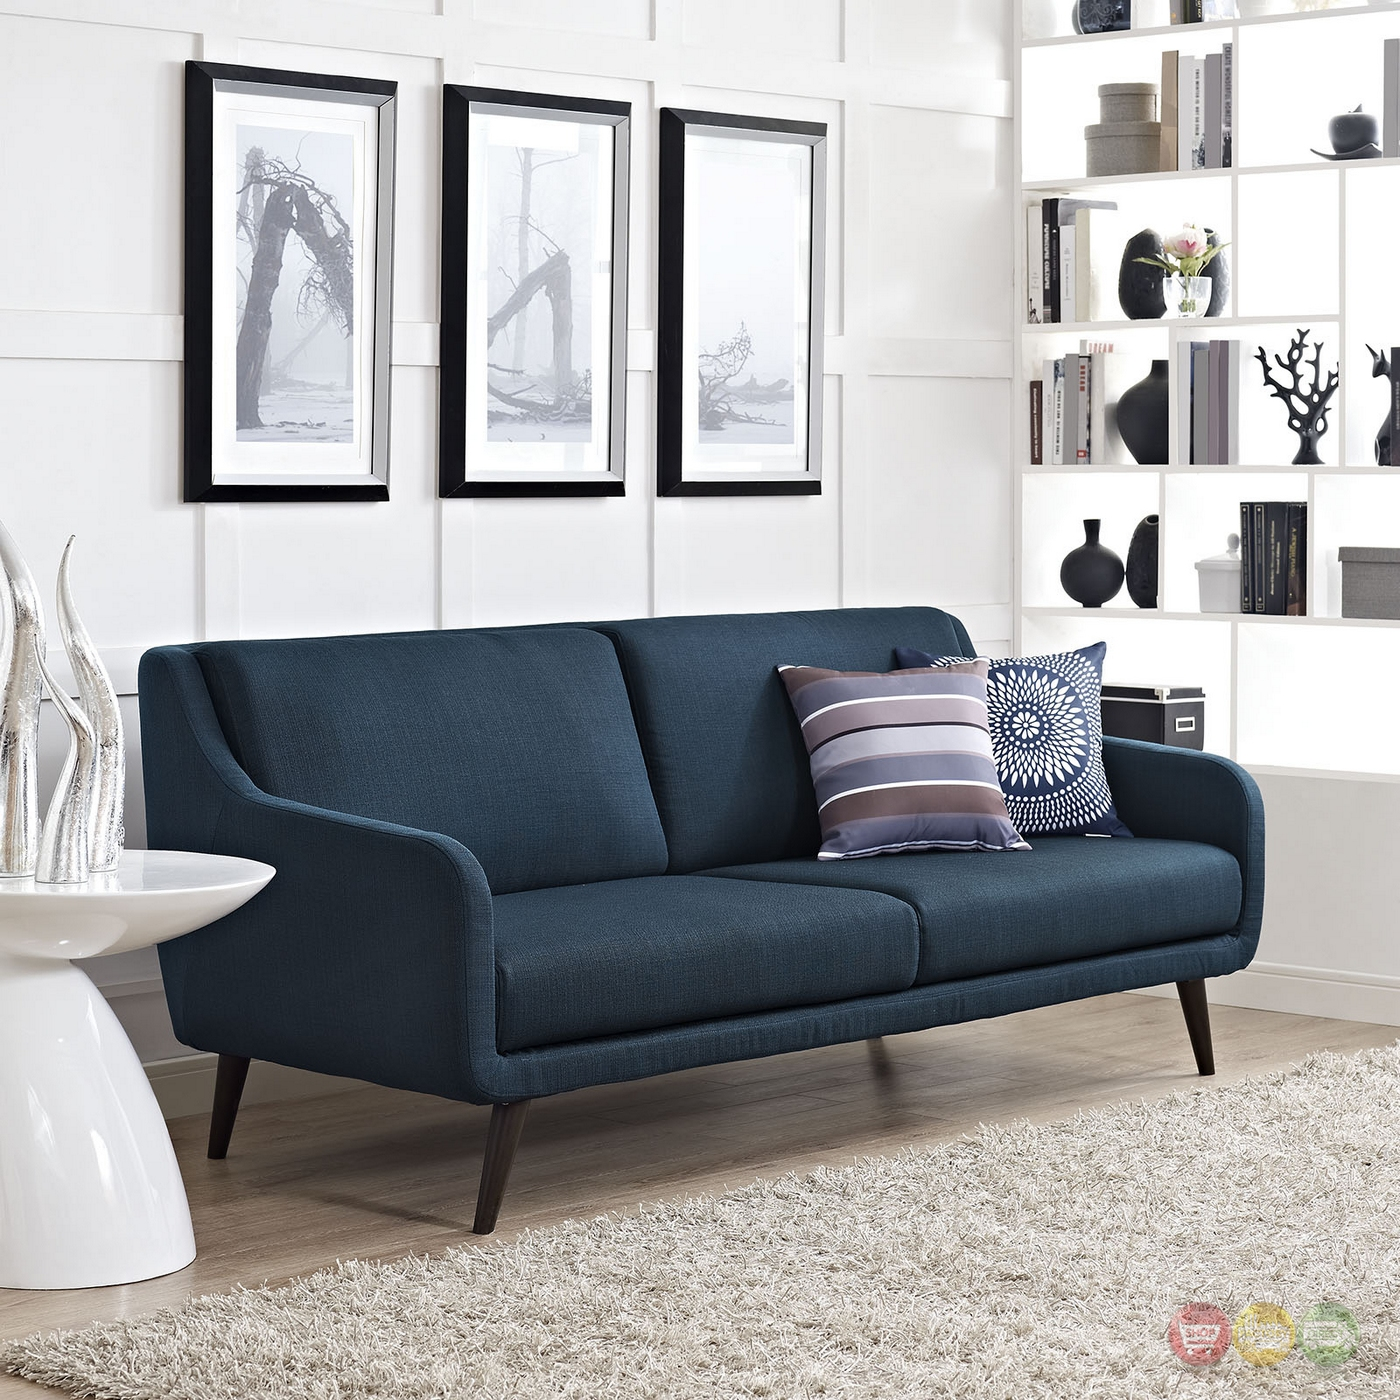 Verve Mid-century Modern Upholstered Sofa With Wood Frame